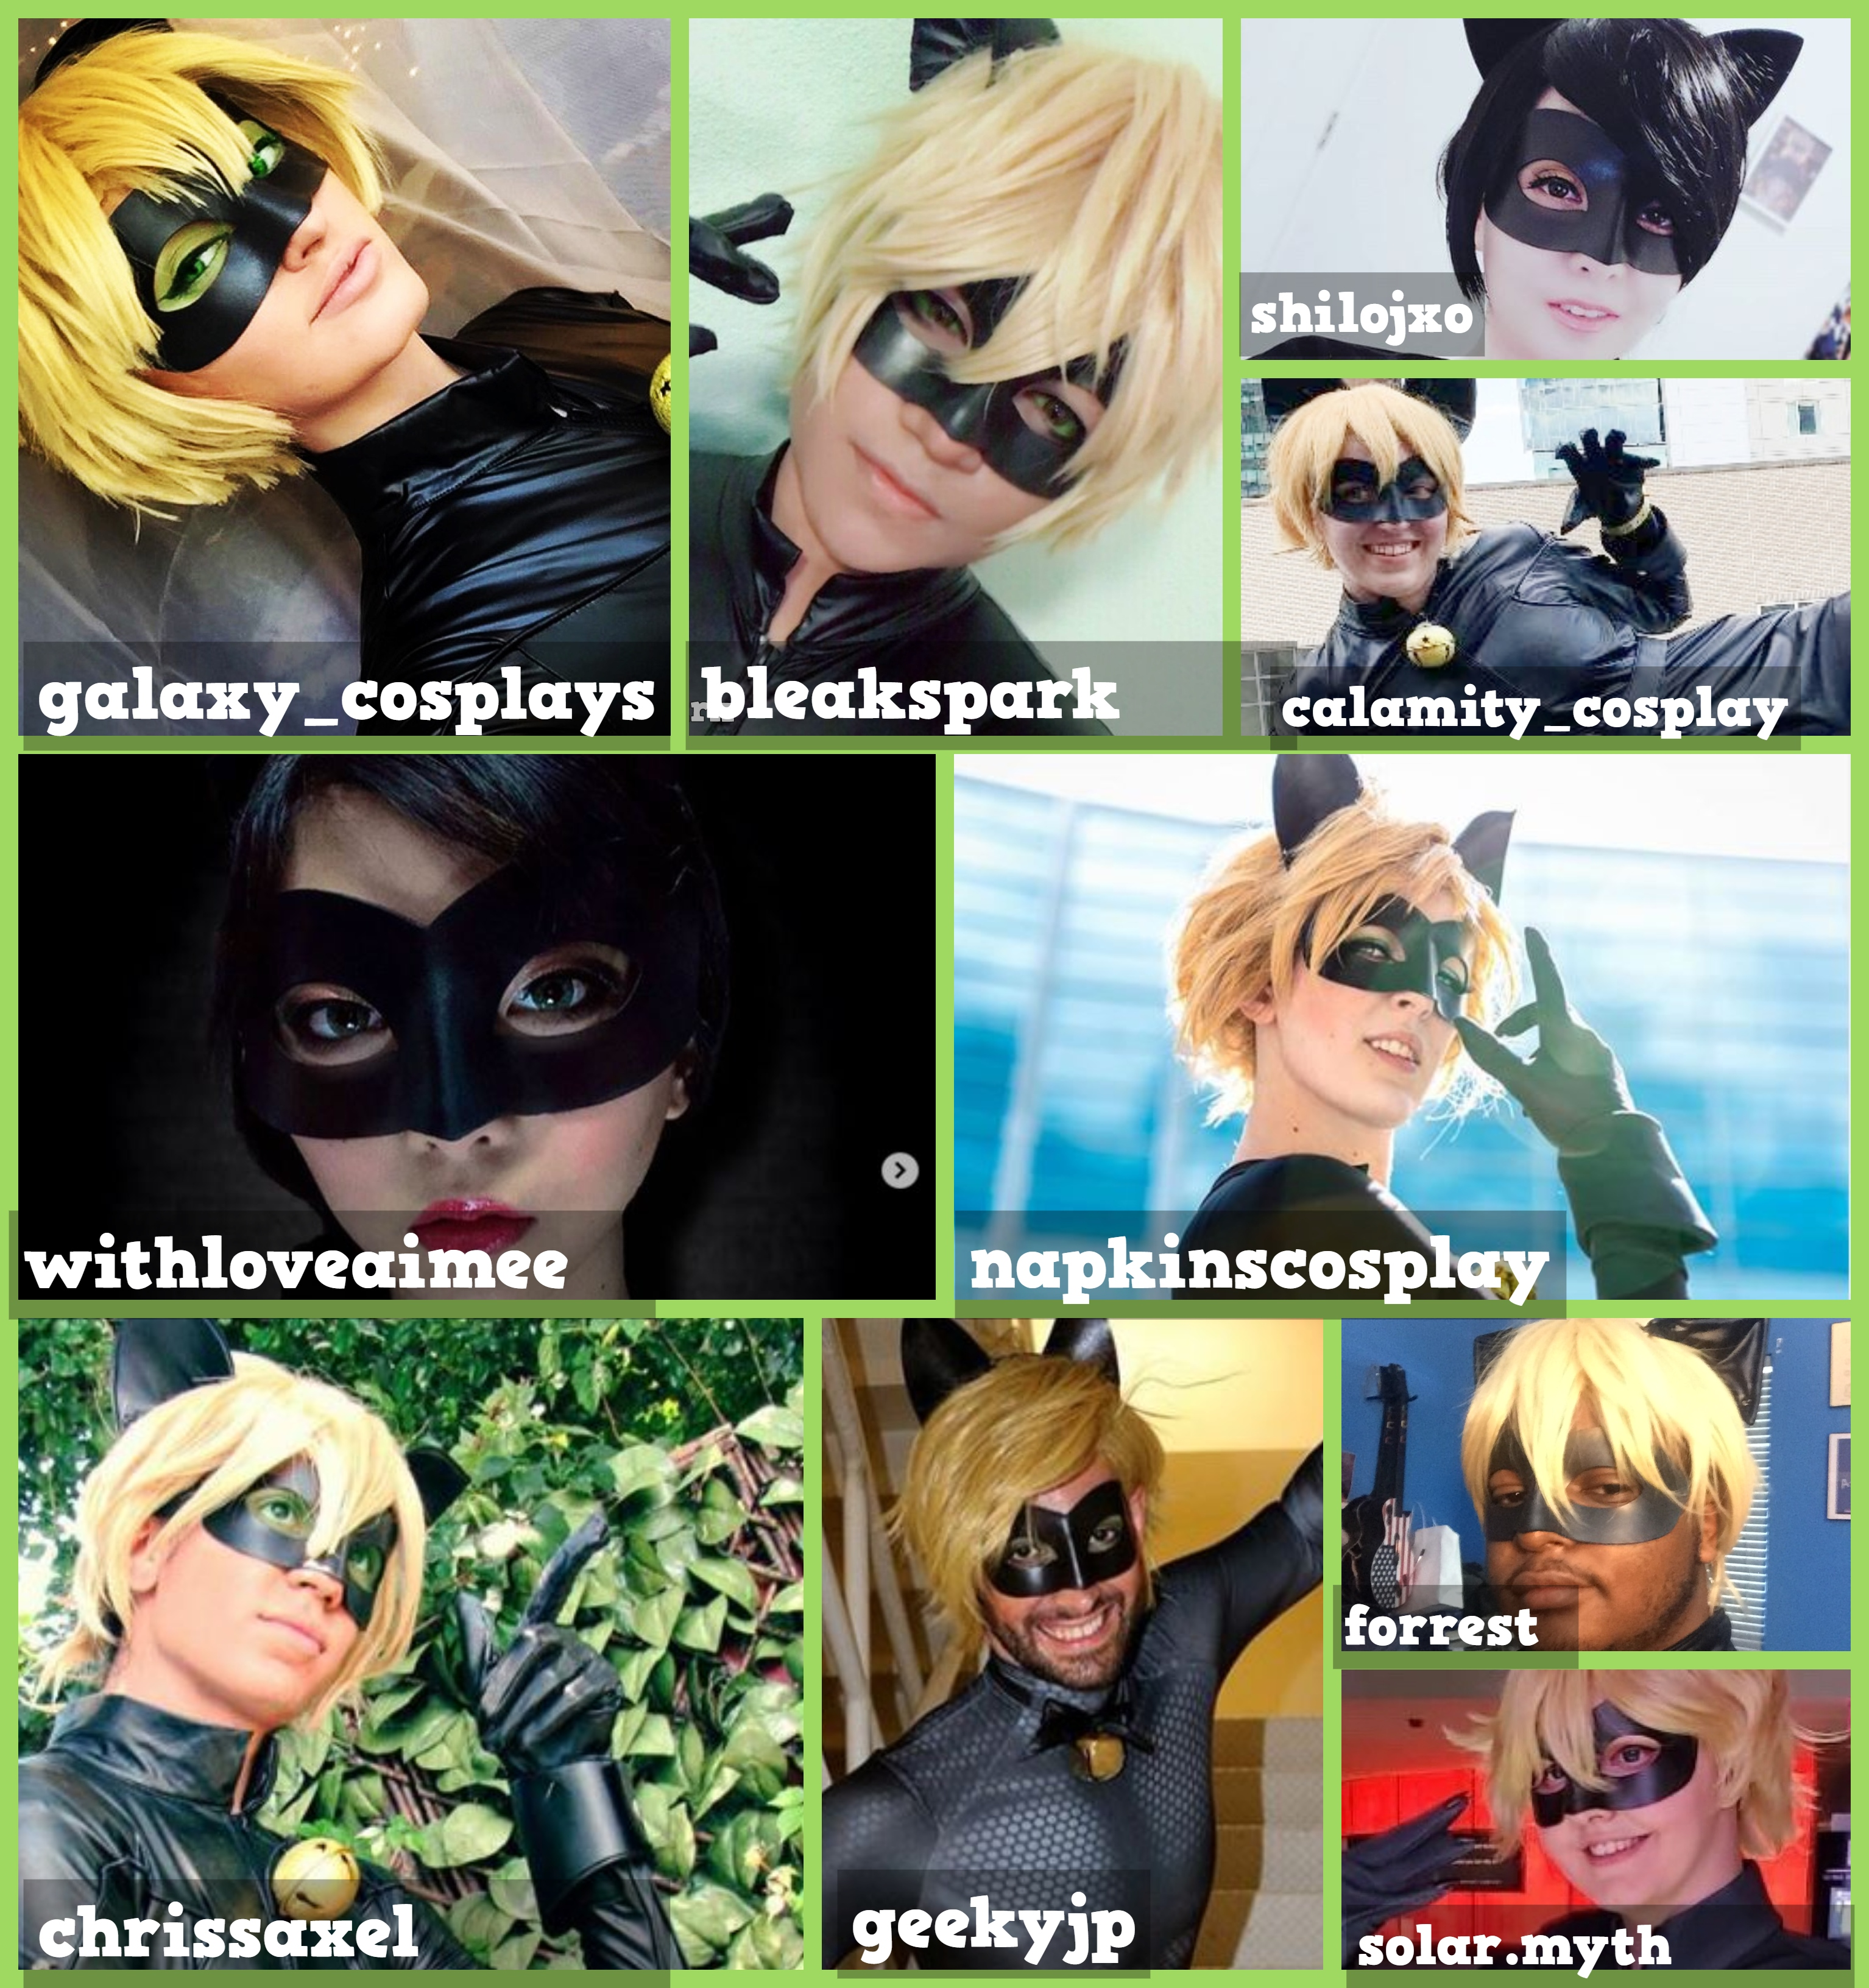 chat-noir-cosplay-collage-2019.jpg